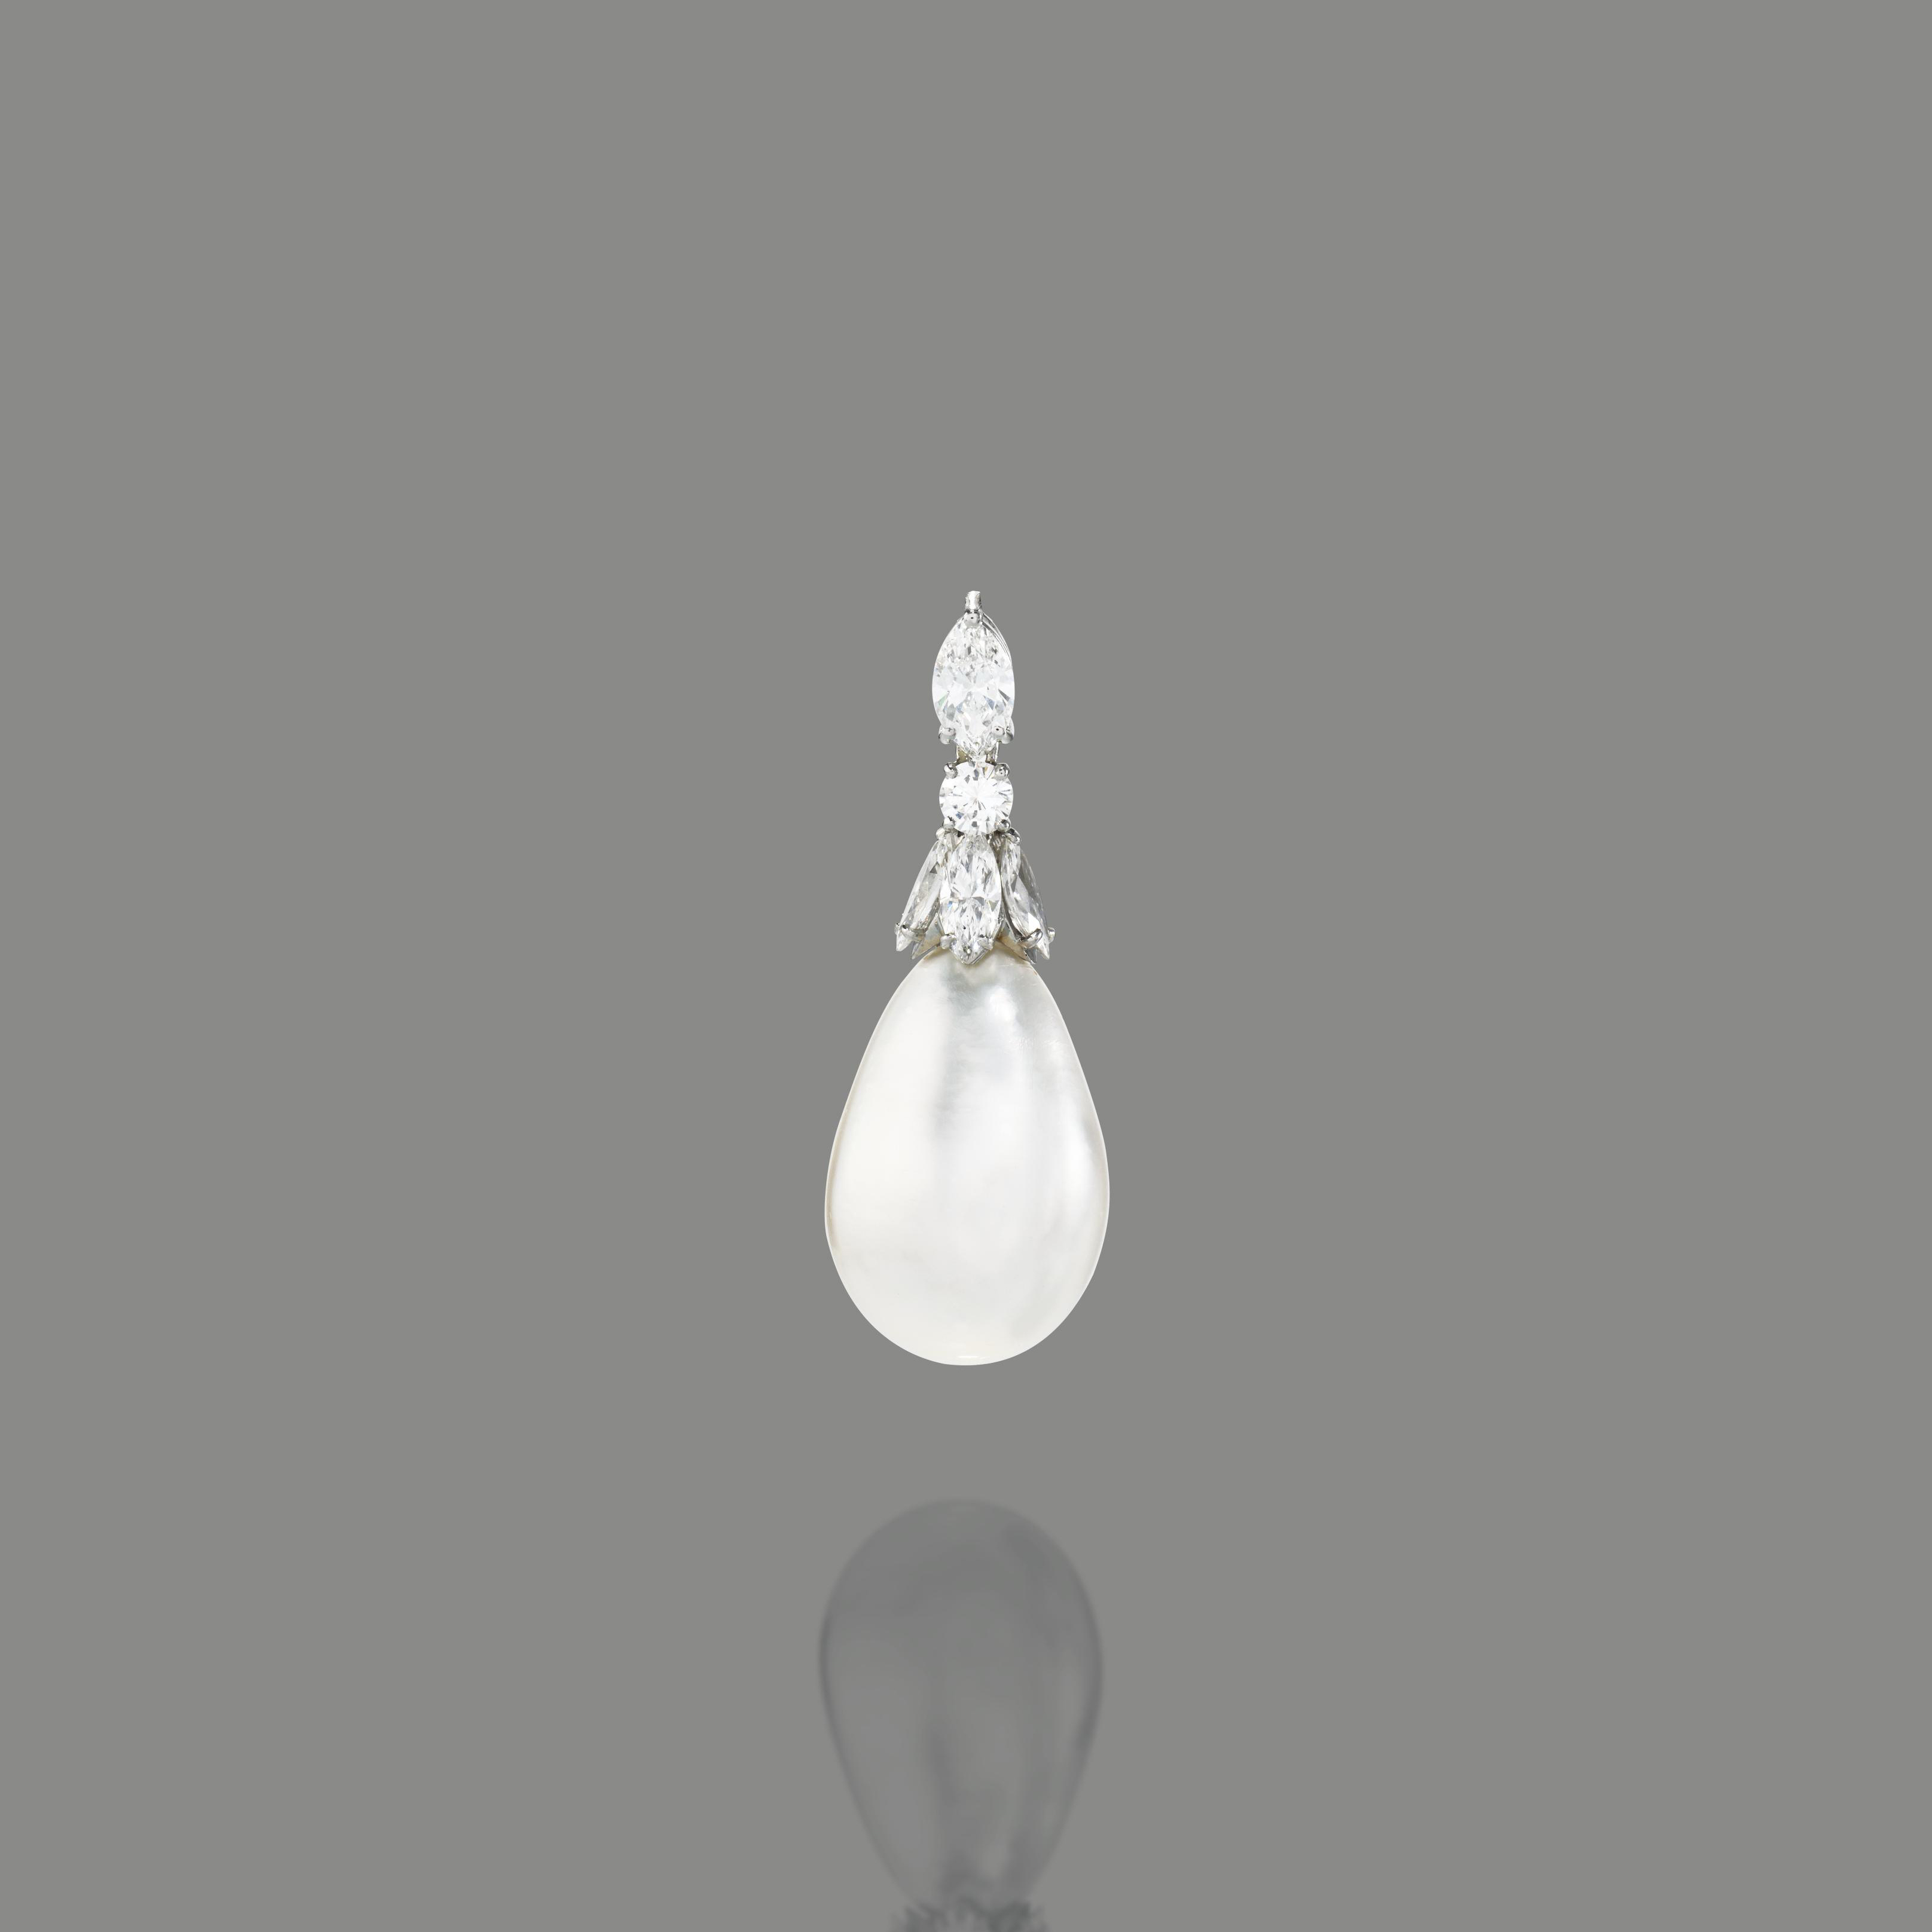 AN EXCEPTIONAL NATURAL PEARL AND DIAMOND PENDANT NECKLACE